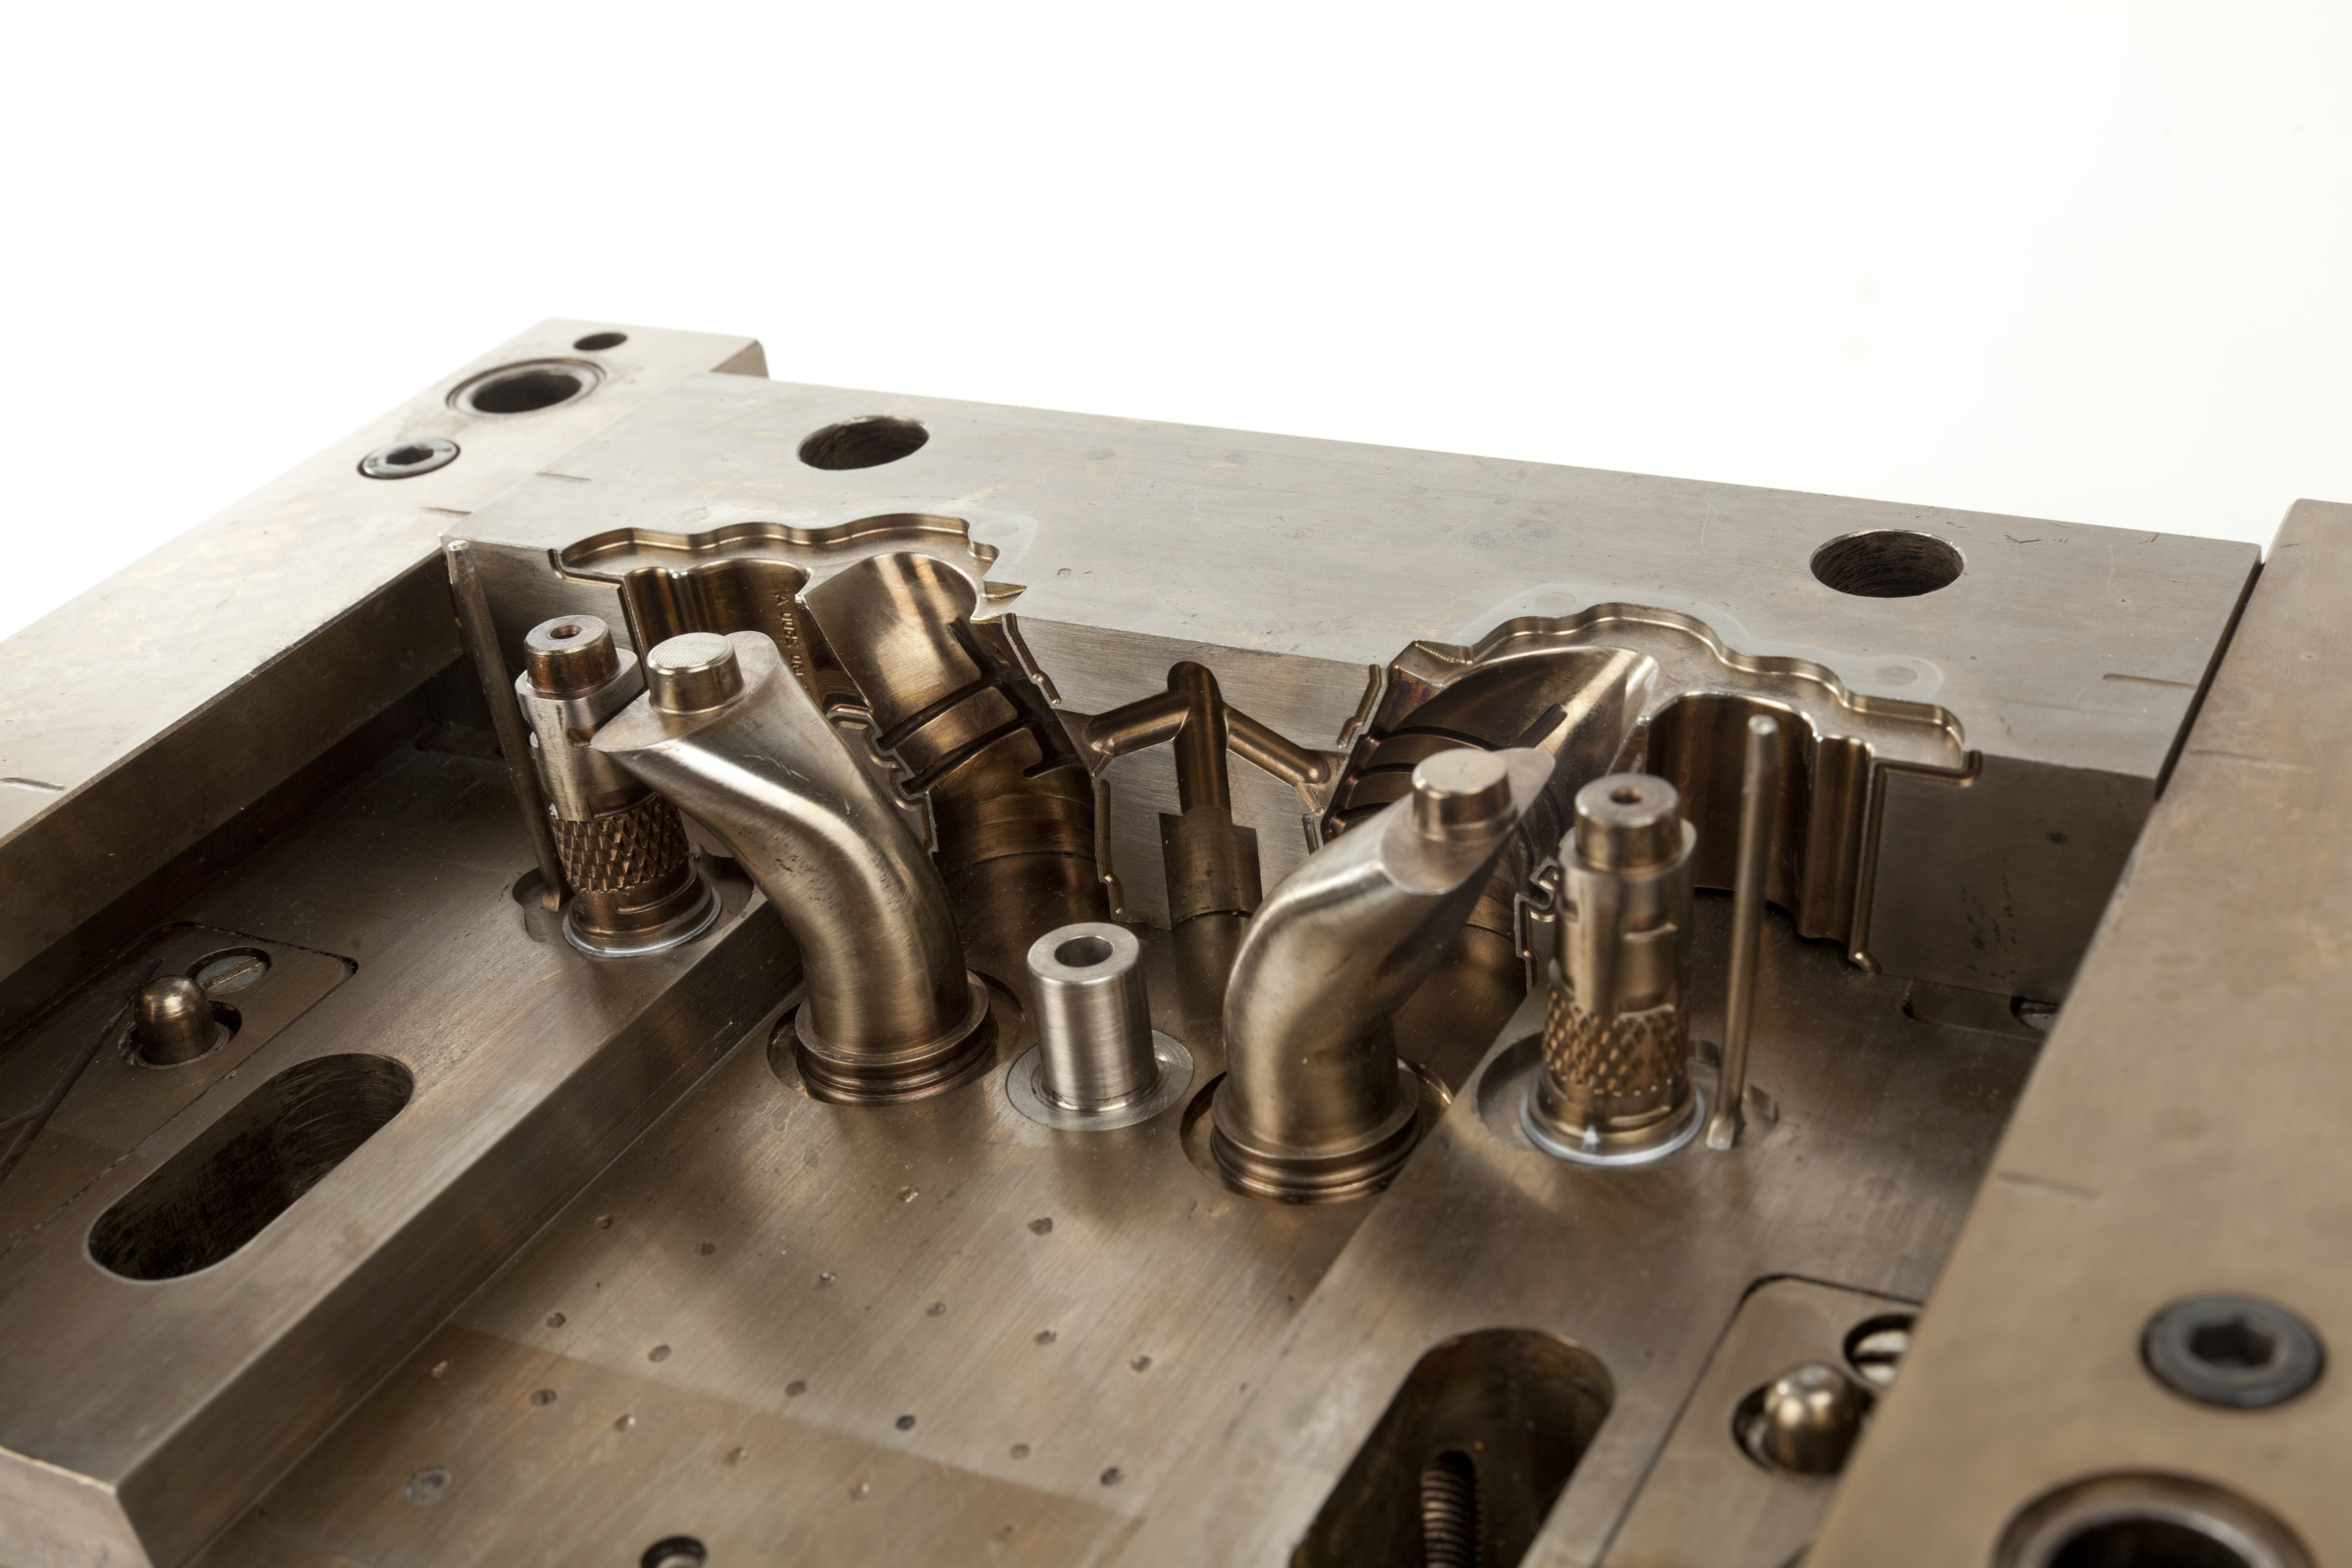 Metal Injection Moulding